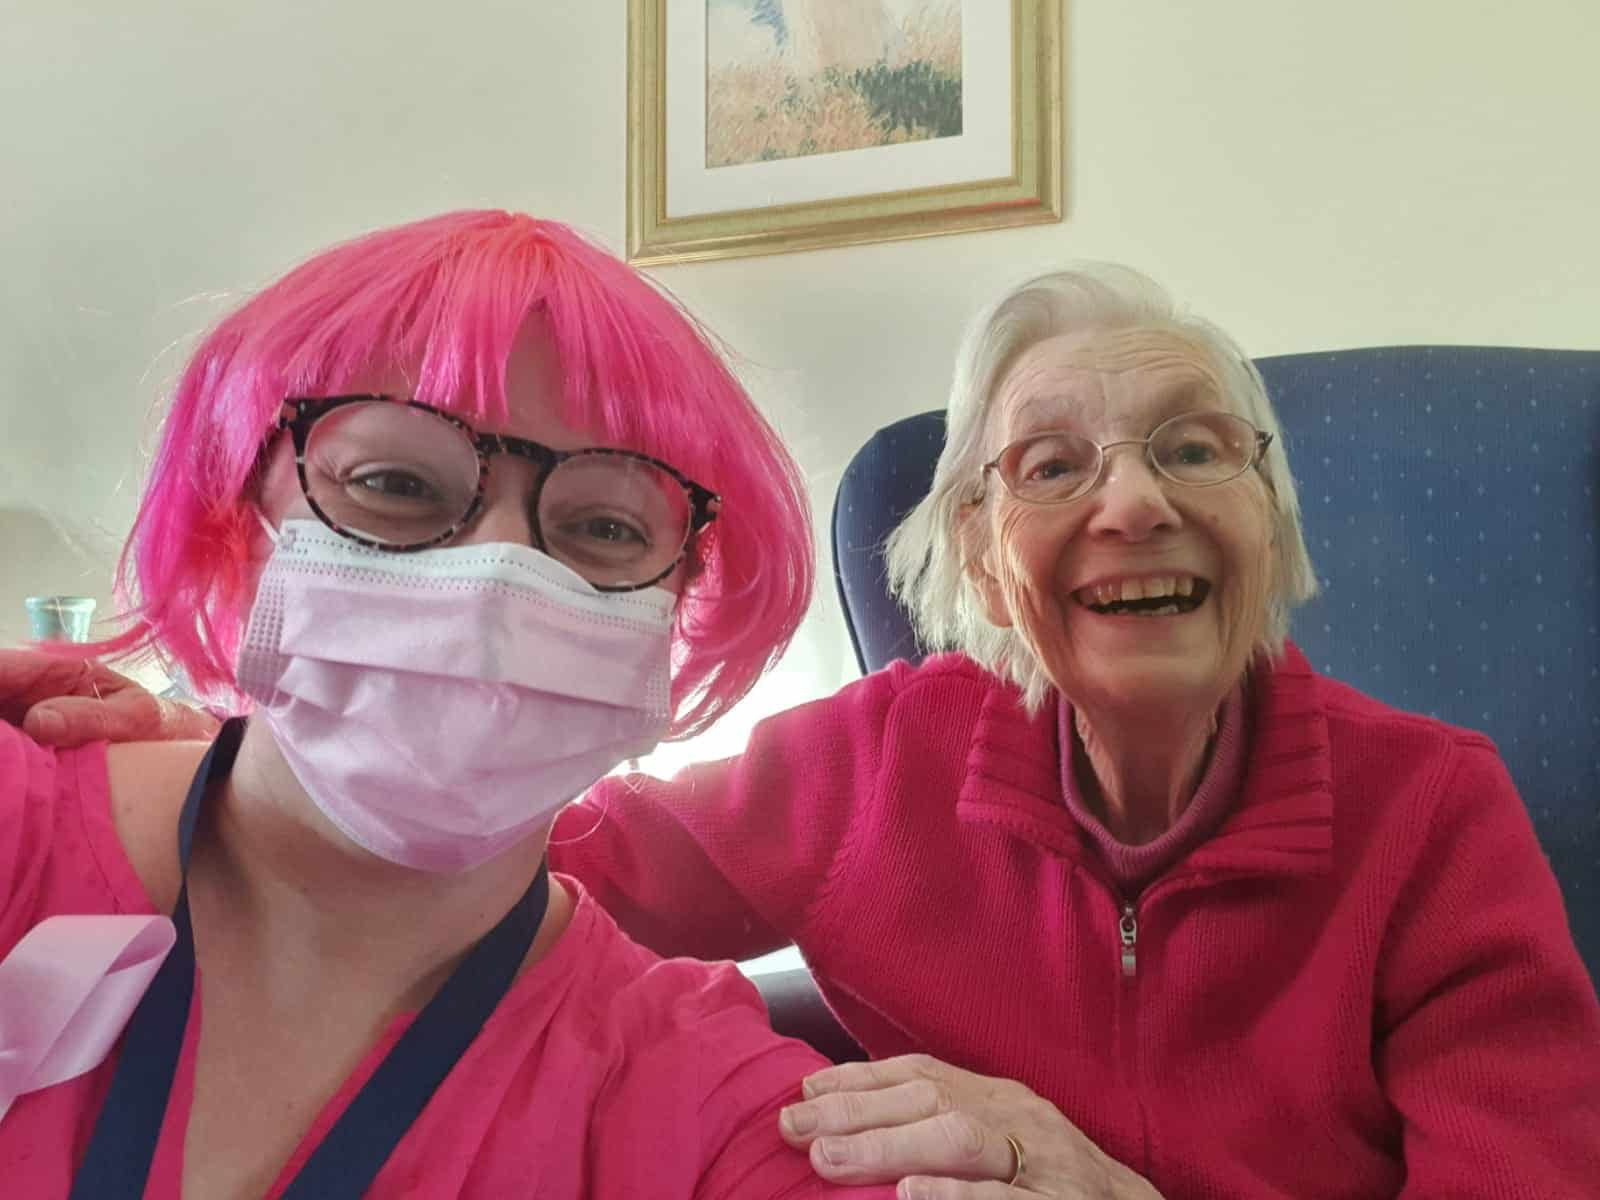 Agincare care worker wearing pink wig